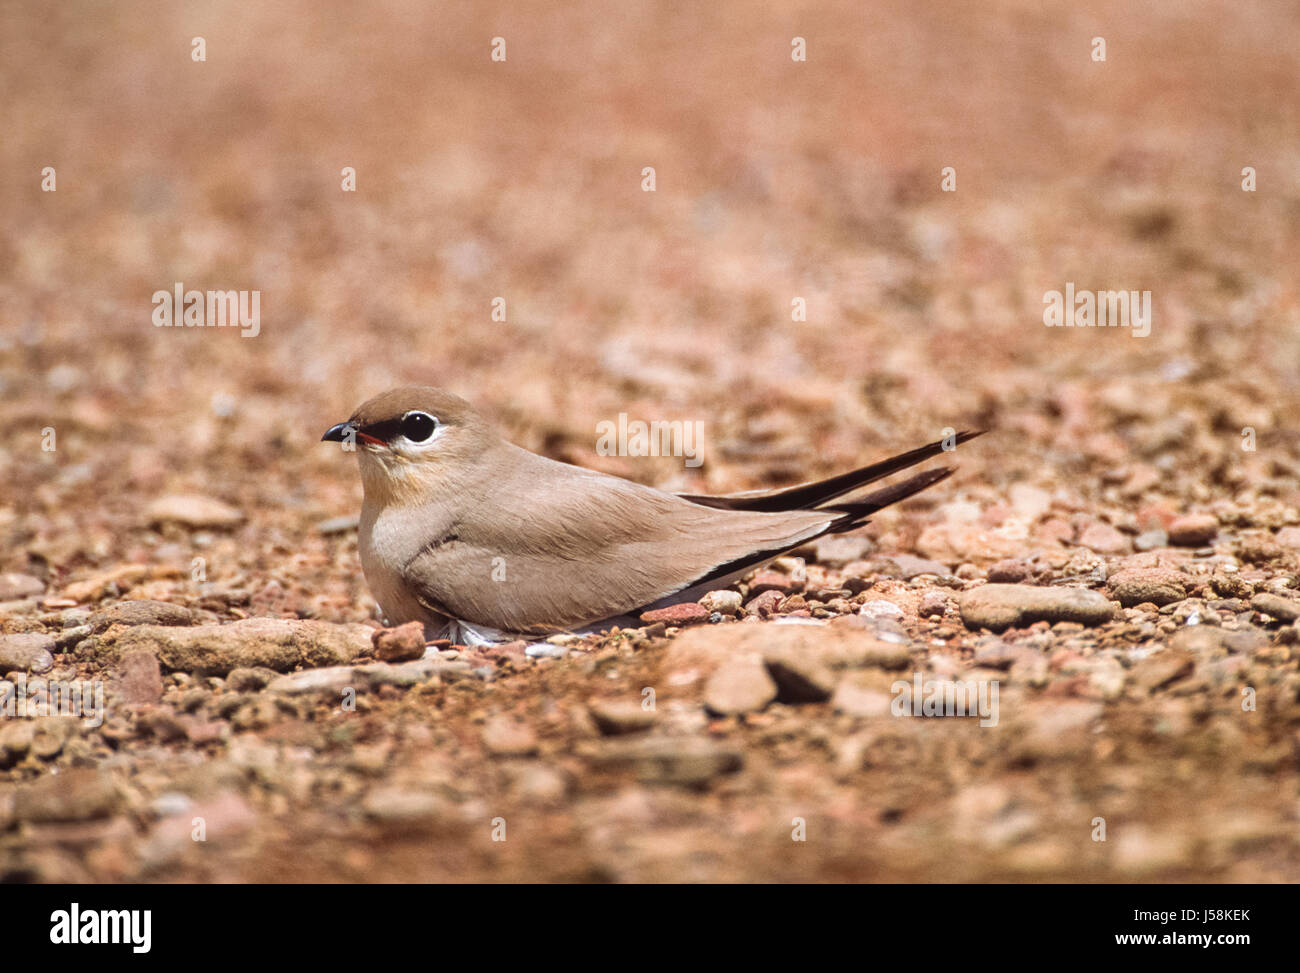 Small Indian Pratincole, Little Pratincole or Small Pratincole, (Gladiola lacteal), on ground nest, Rajasthan, India - Stock Image